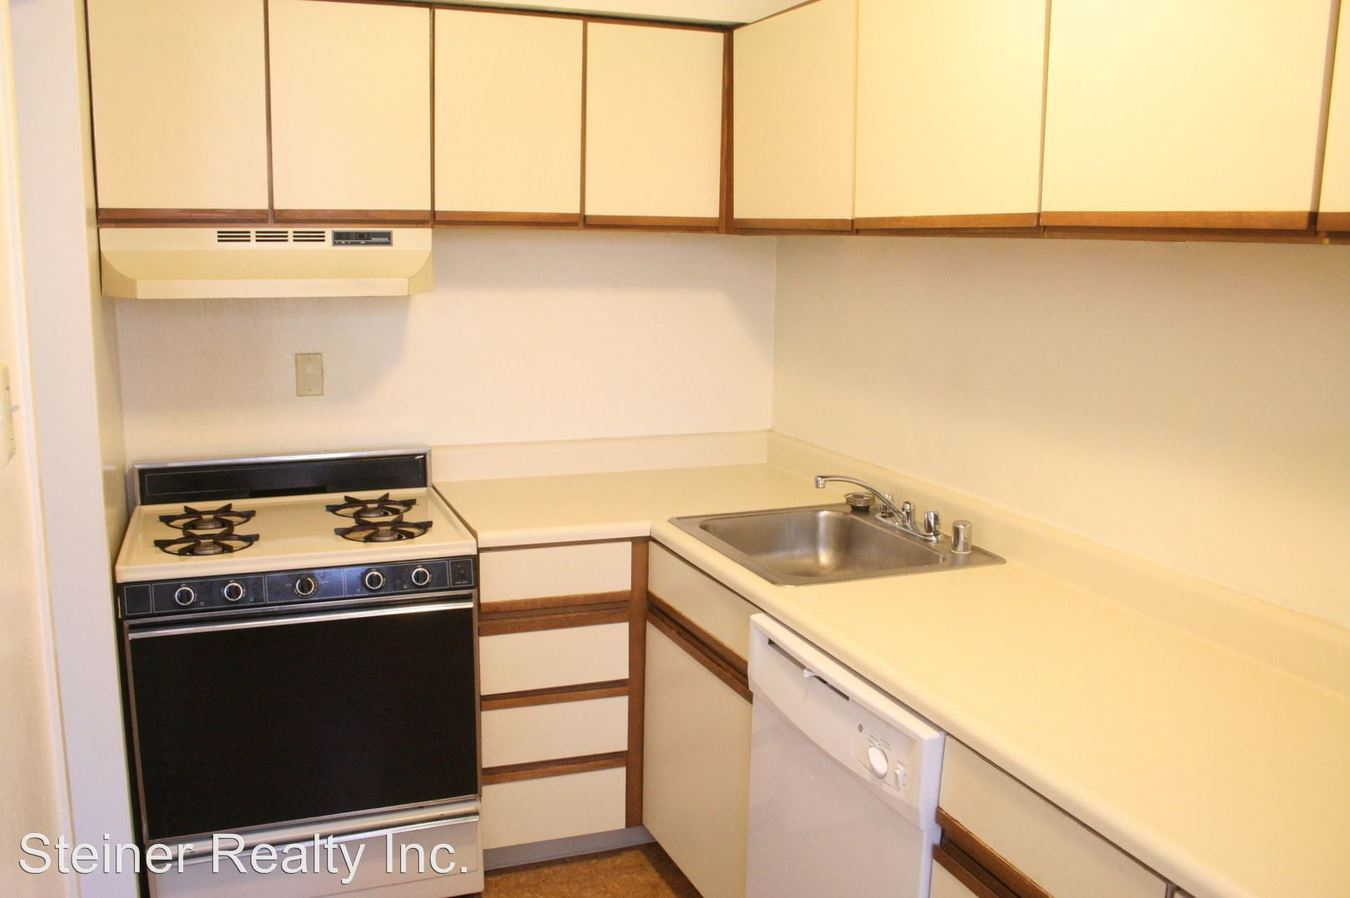 2 Bedrooms 1 Bathroom Apartment for rent at 320 Ohio River Boulevard in Sewickley, PA